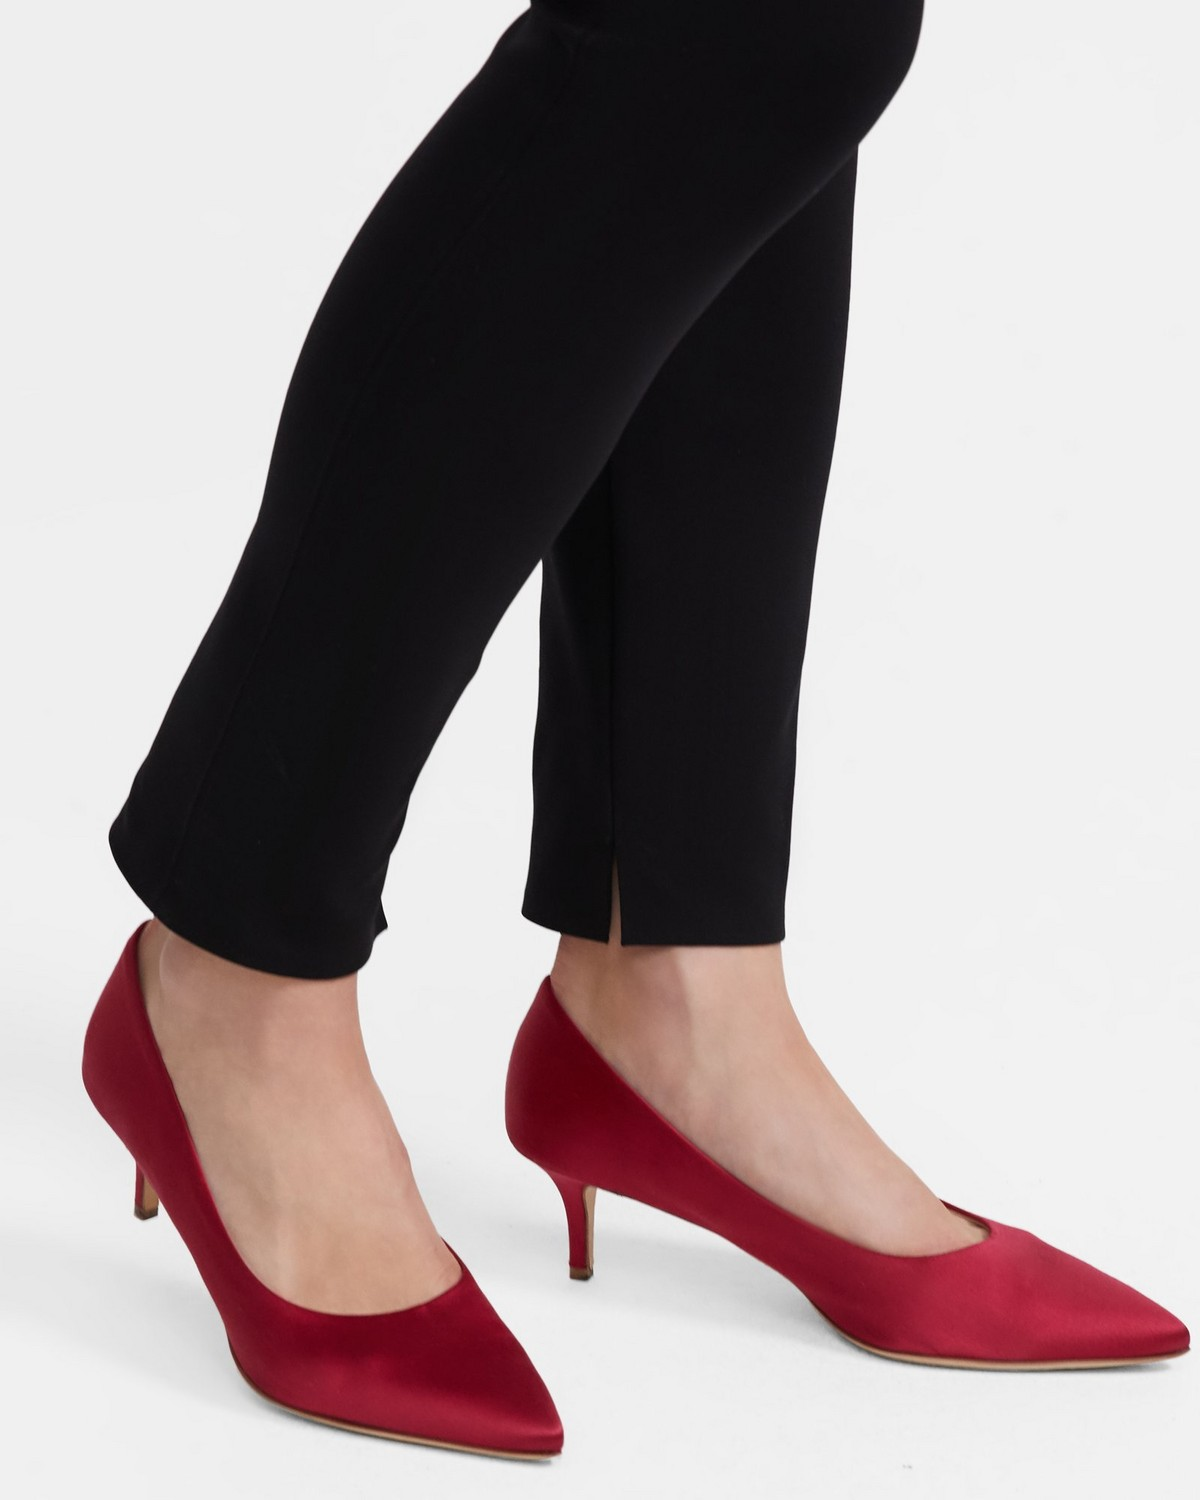 City 55 Pump in Satin